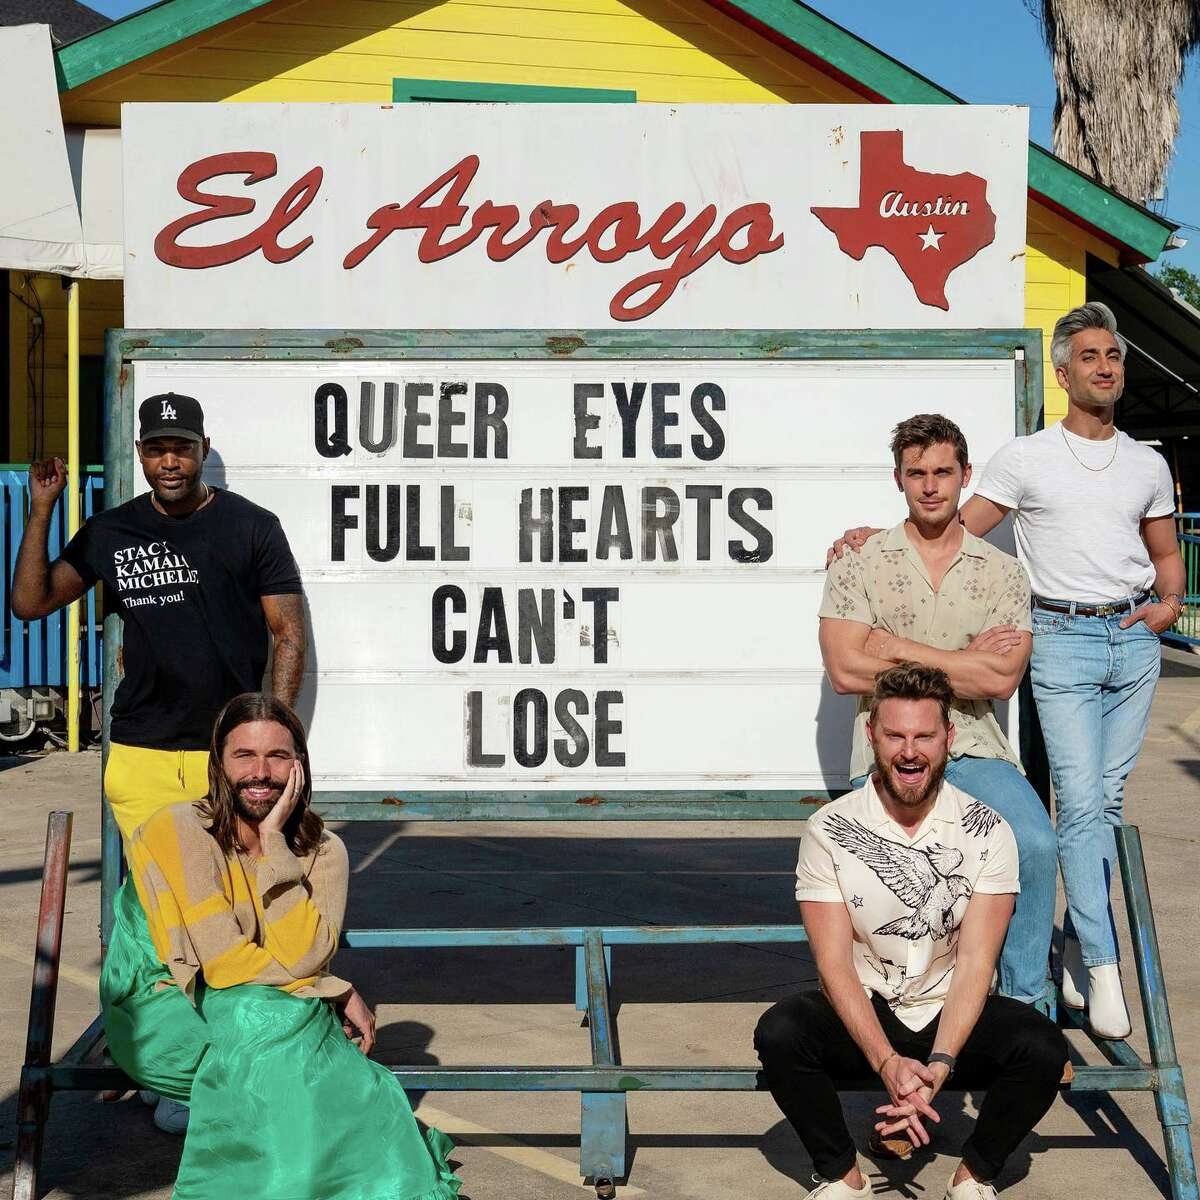 Austin restuaunt El Arroyo is selling jigsaw puzzles of its iconic Texas marquee that usually has a funny and clever saying on it. It's so popular that even the cast from